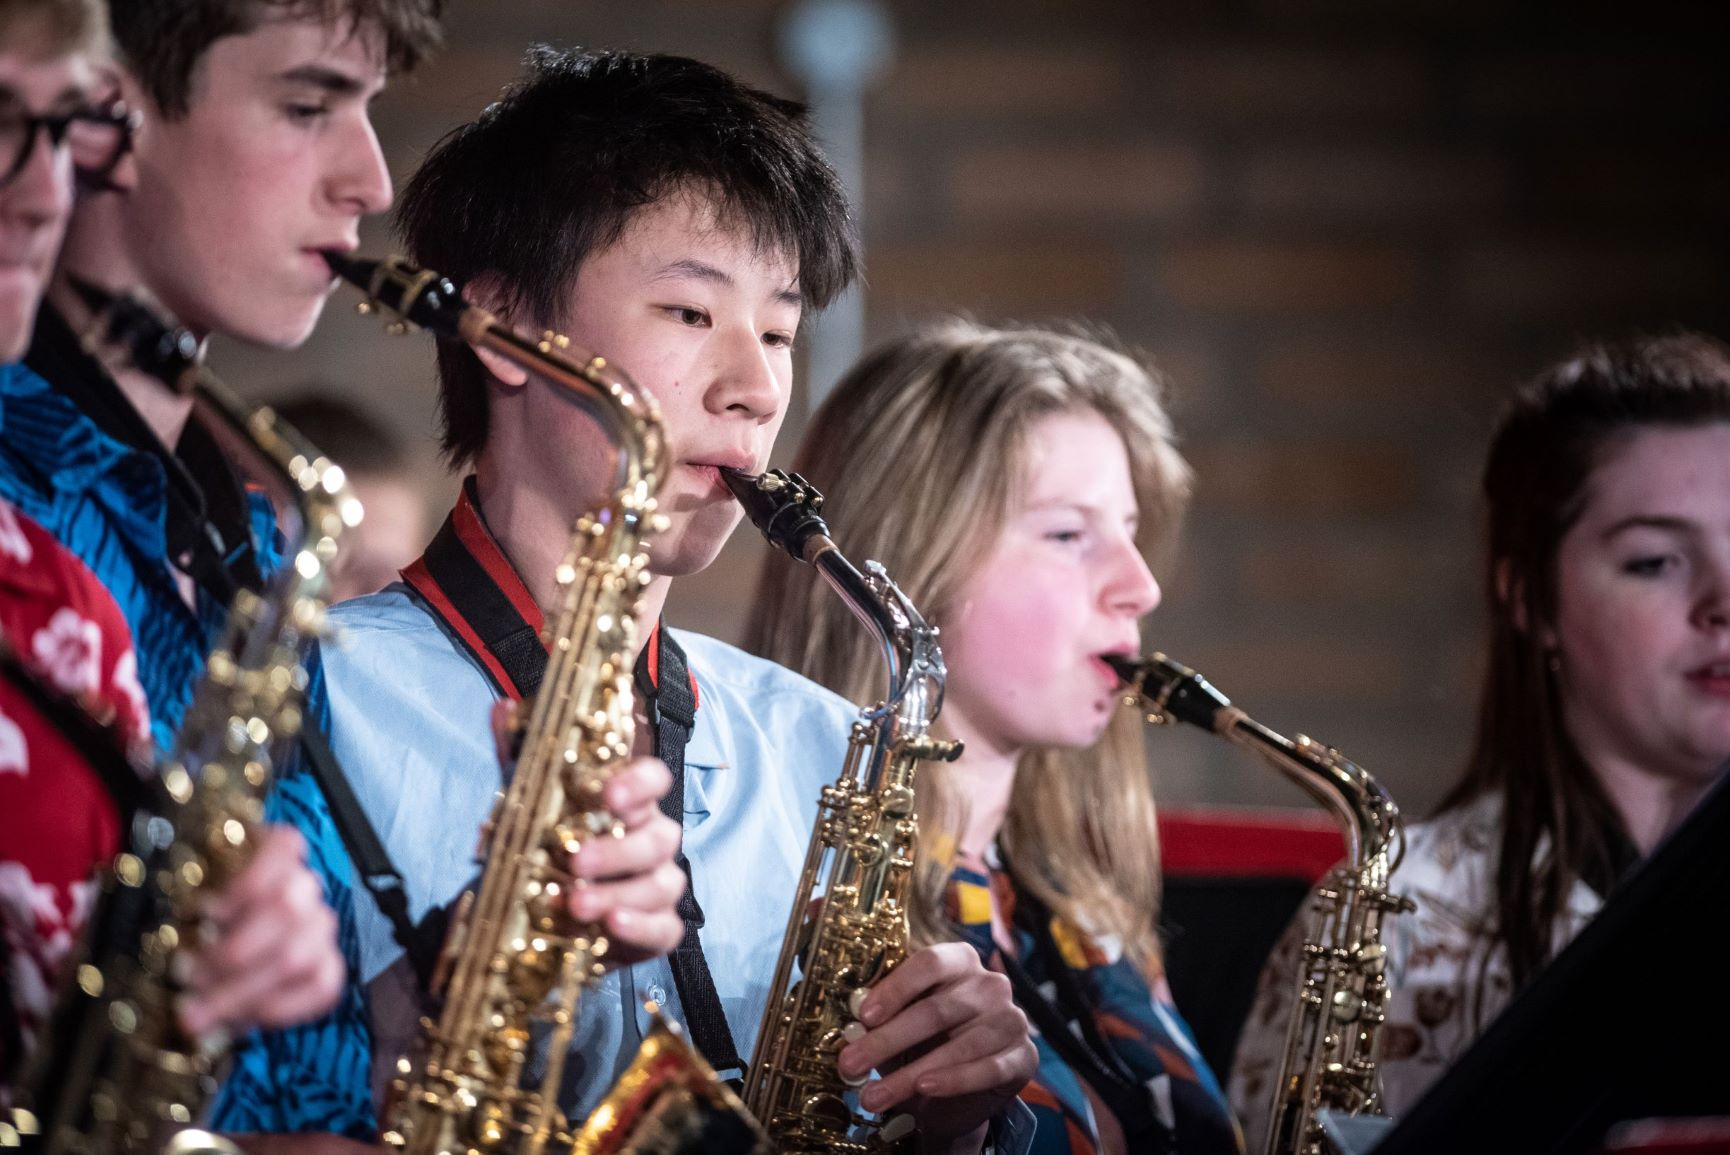 Magdalen College School Sixth Form Music pupils playing brass instruments